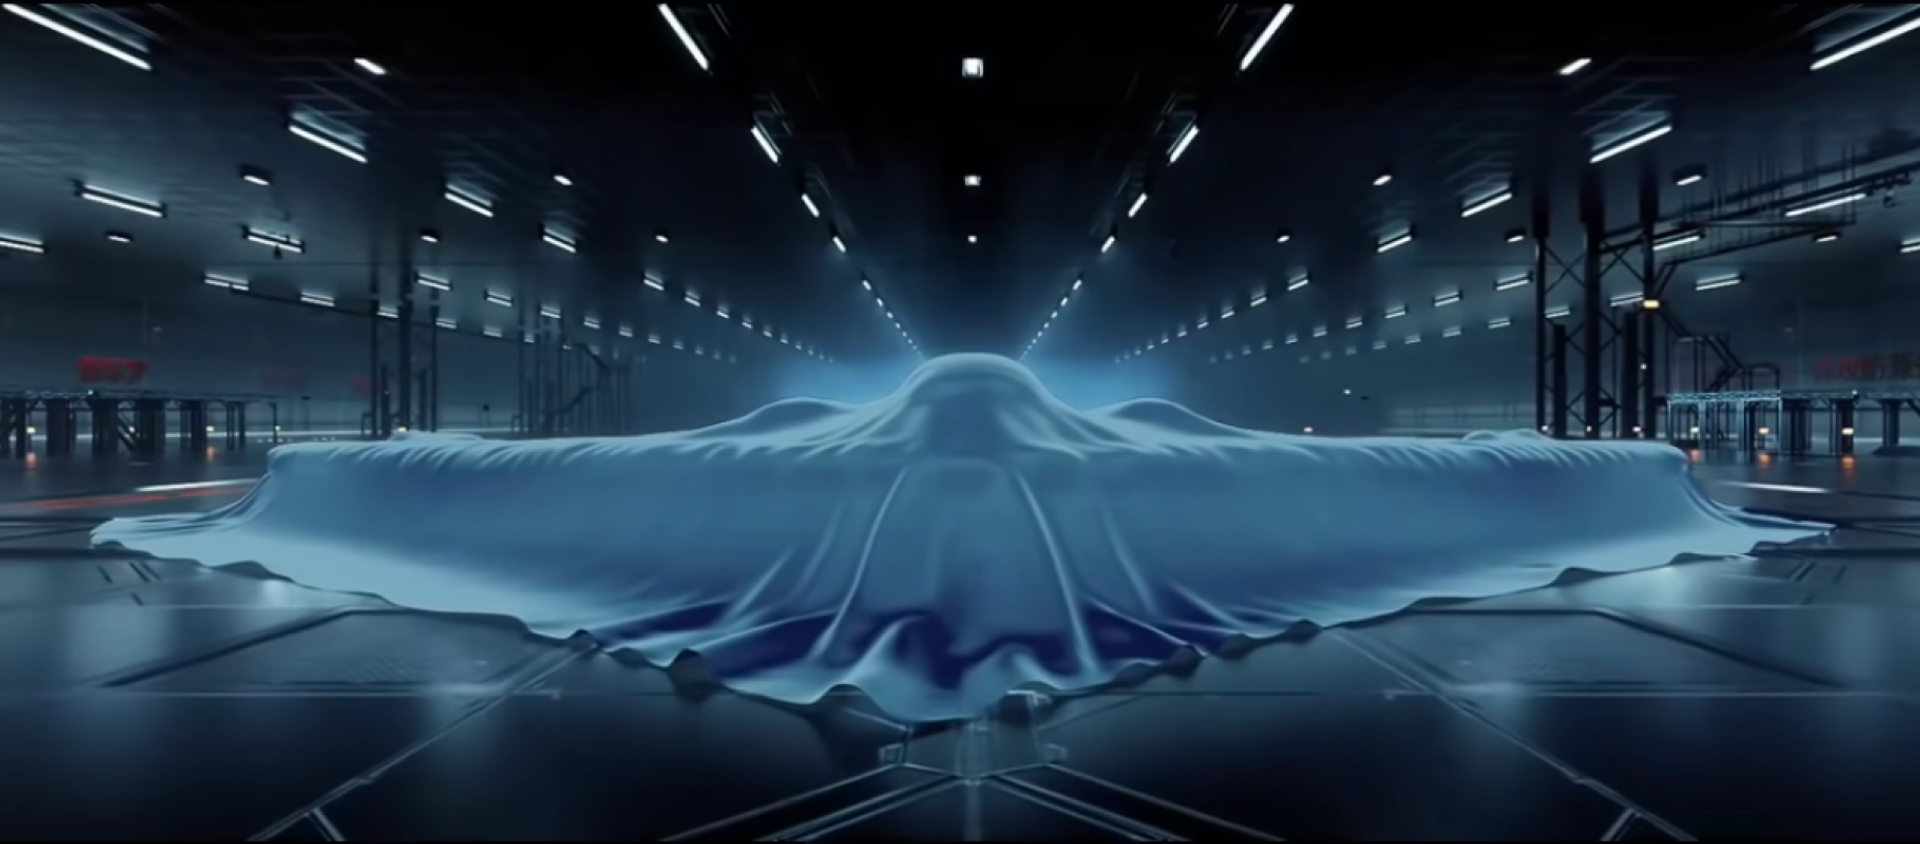 A teased image of China's forthcoming H-20 stealth bomber taken from a People's Liberation Army Air Force promotional video - Sputnik International, 1920, 09.01.2021